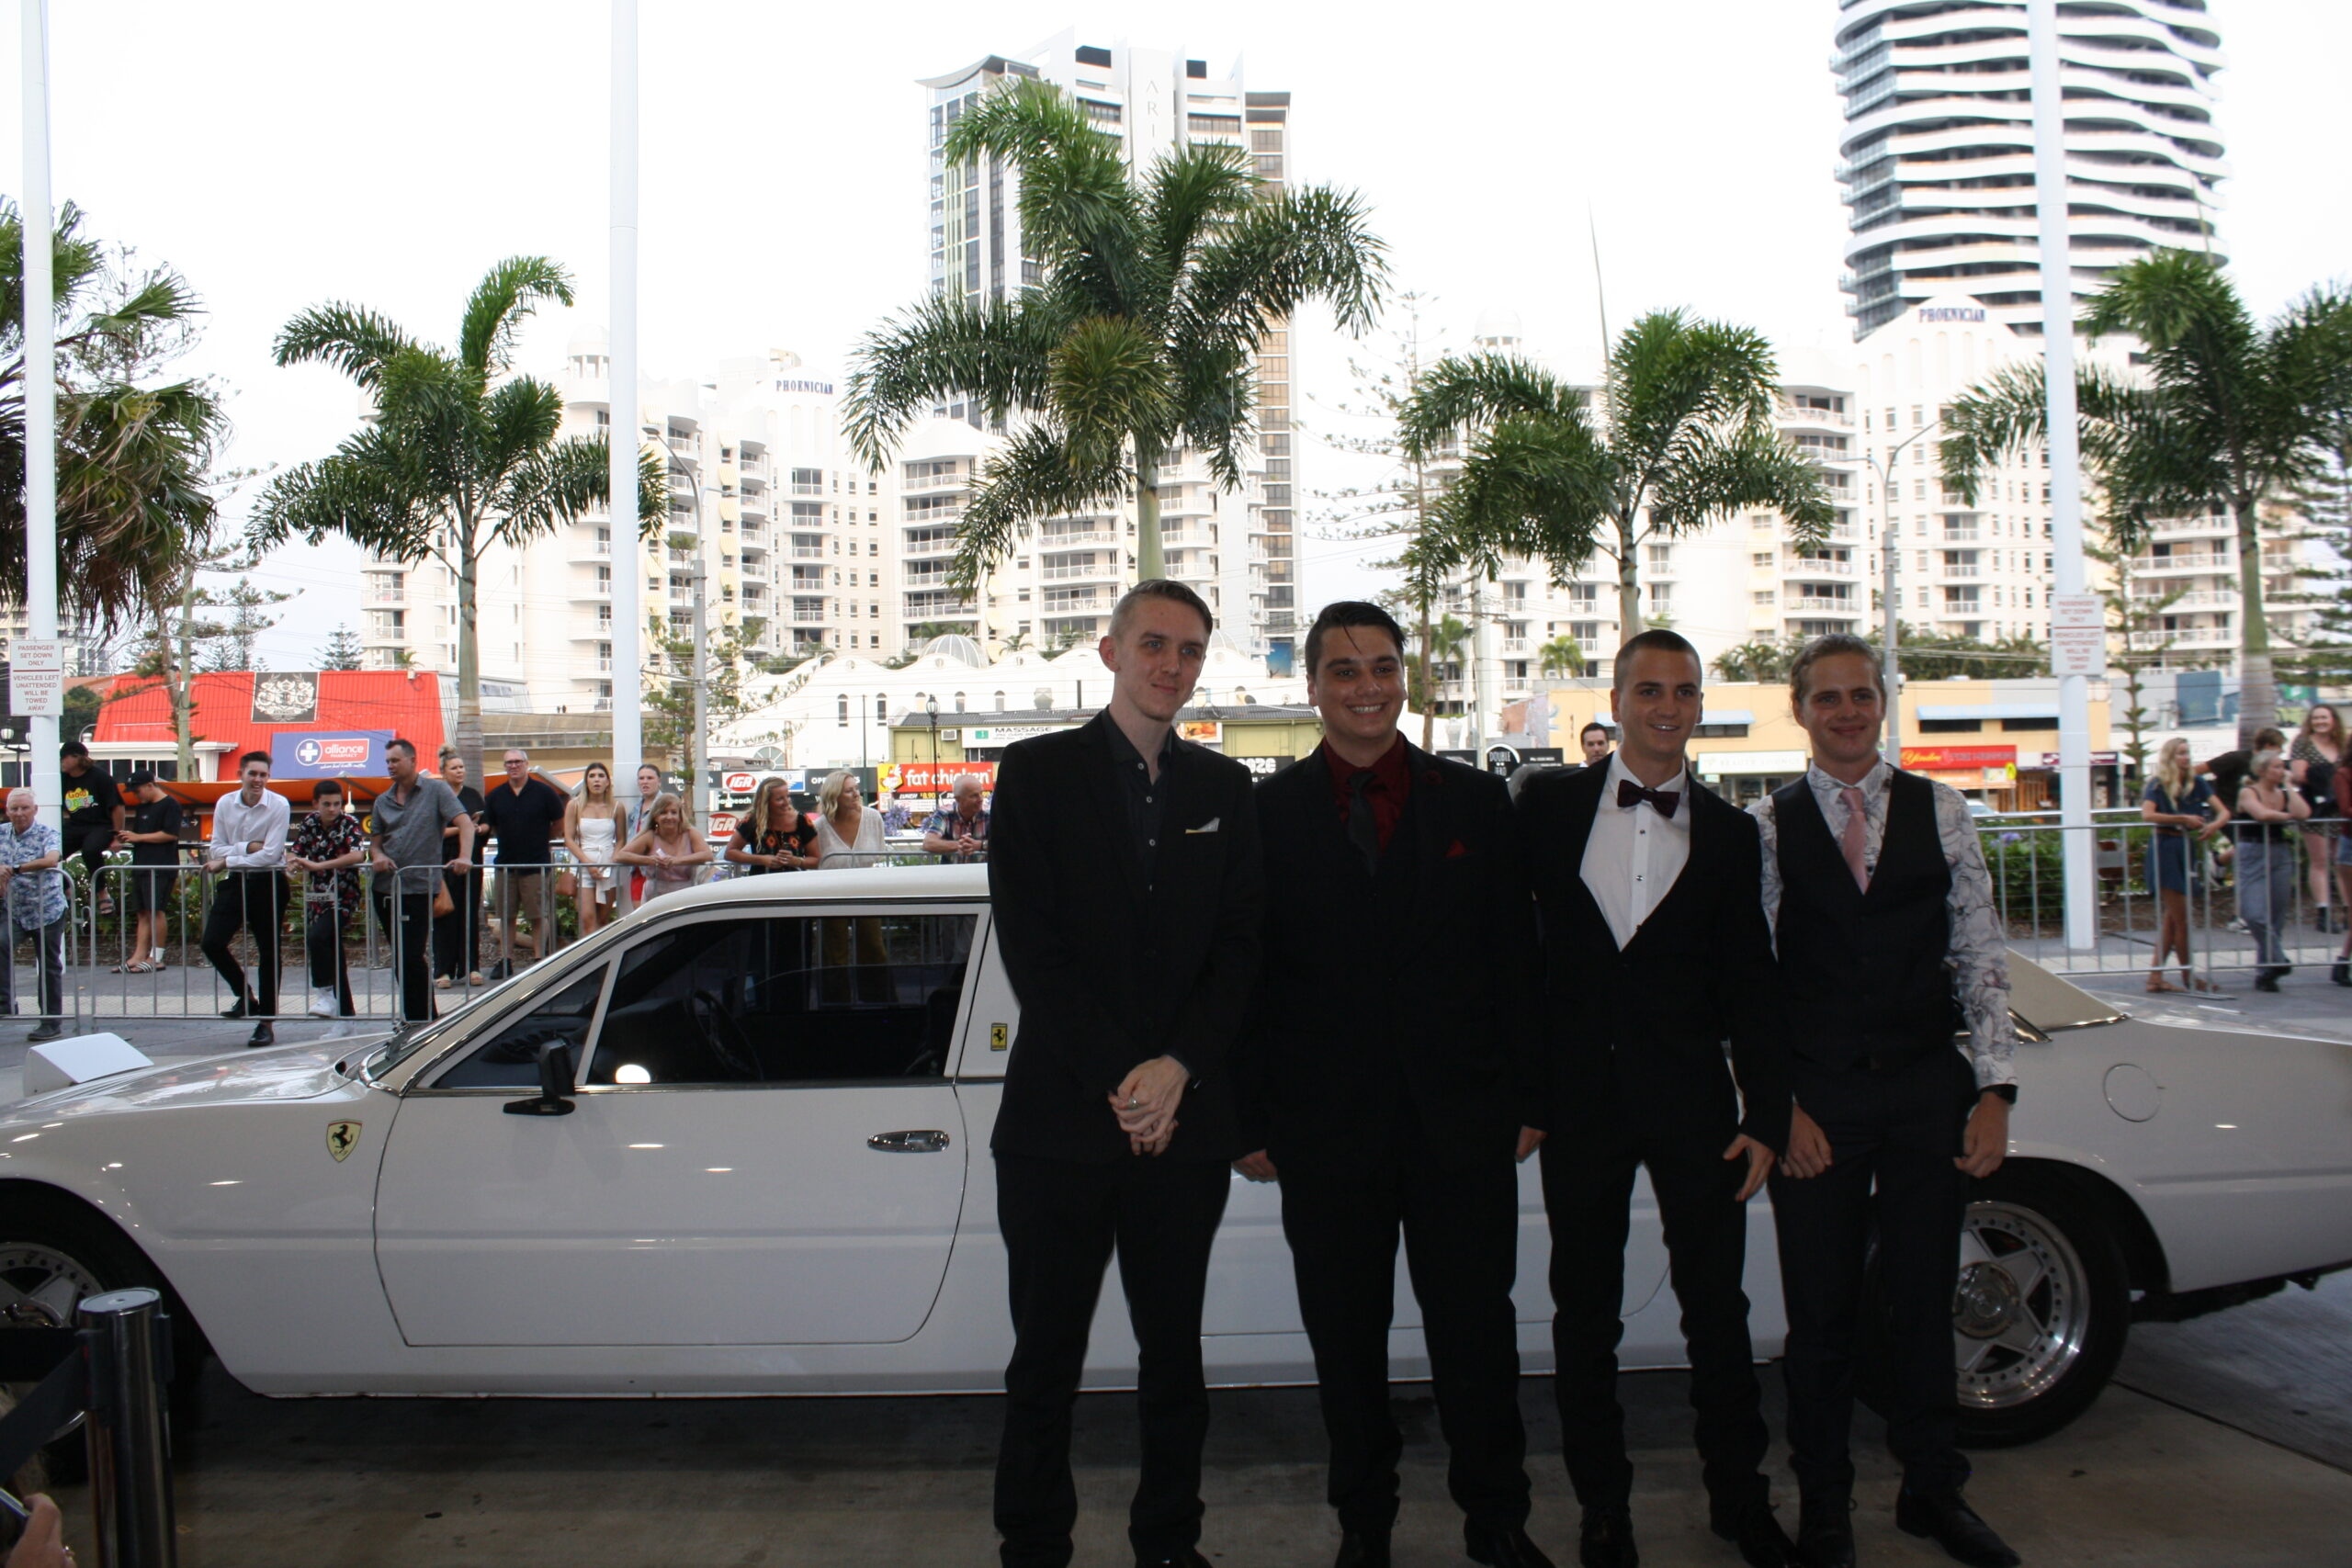 BROAD BEACH CONVENTION CENTRE FORMAL